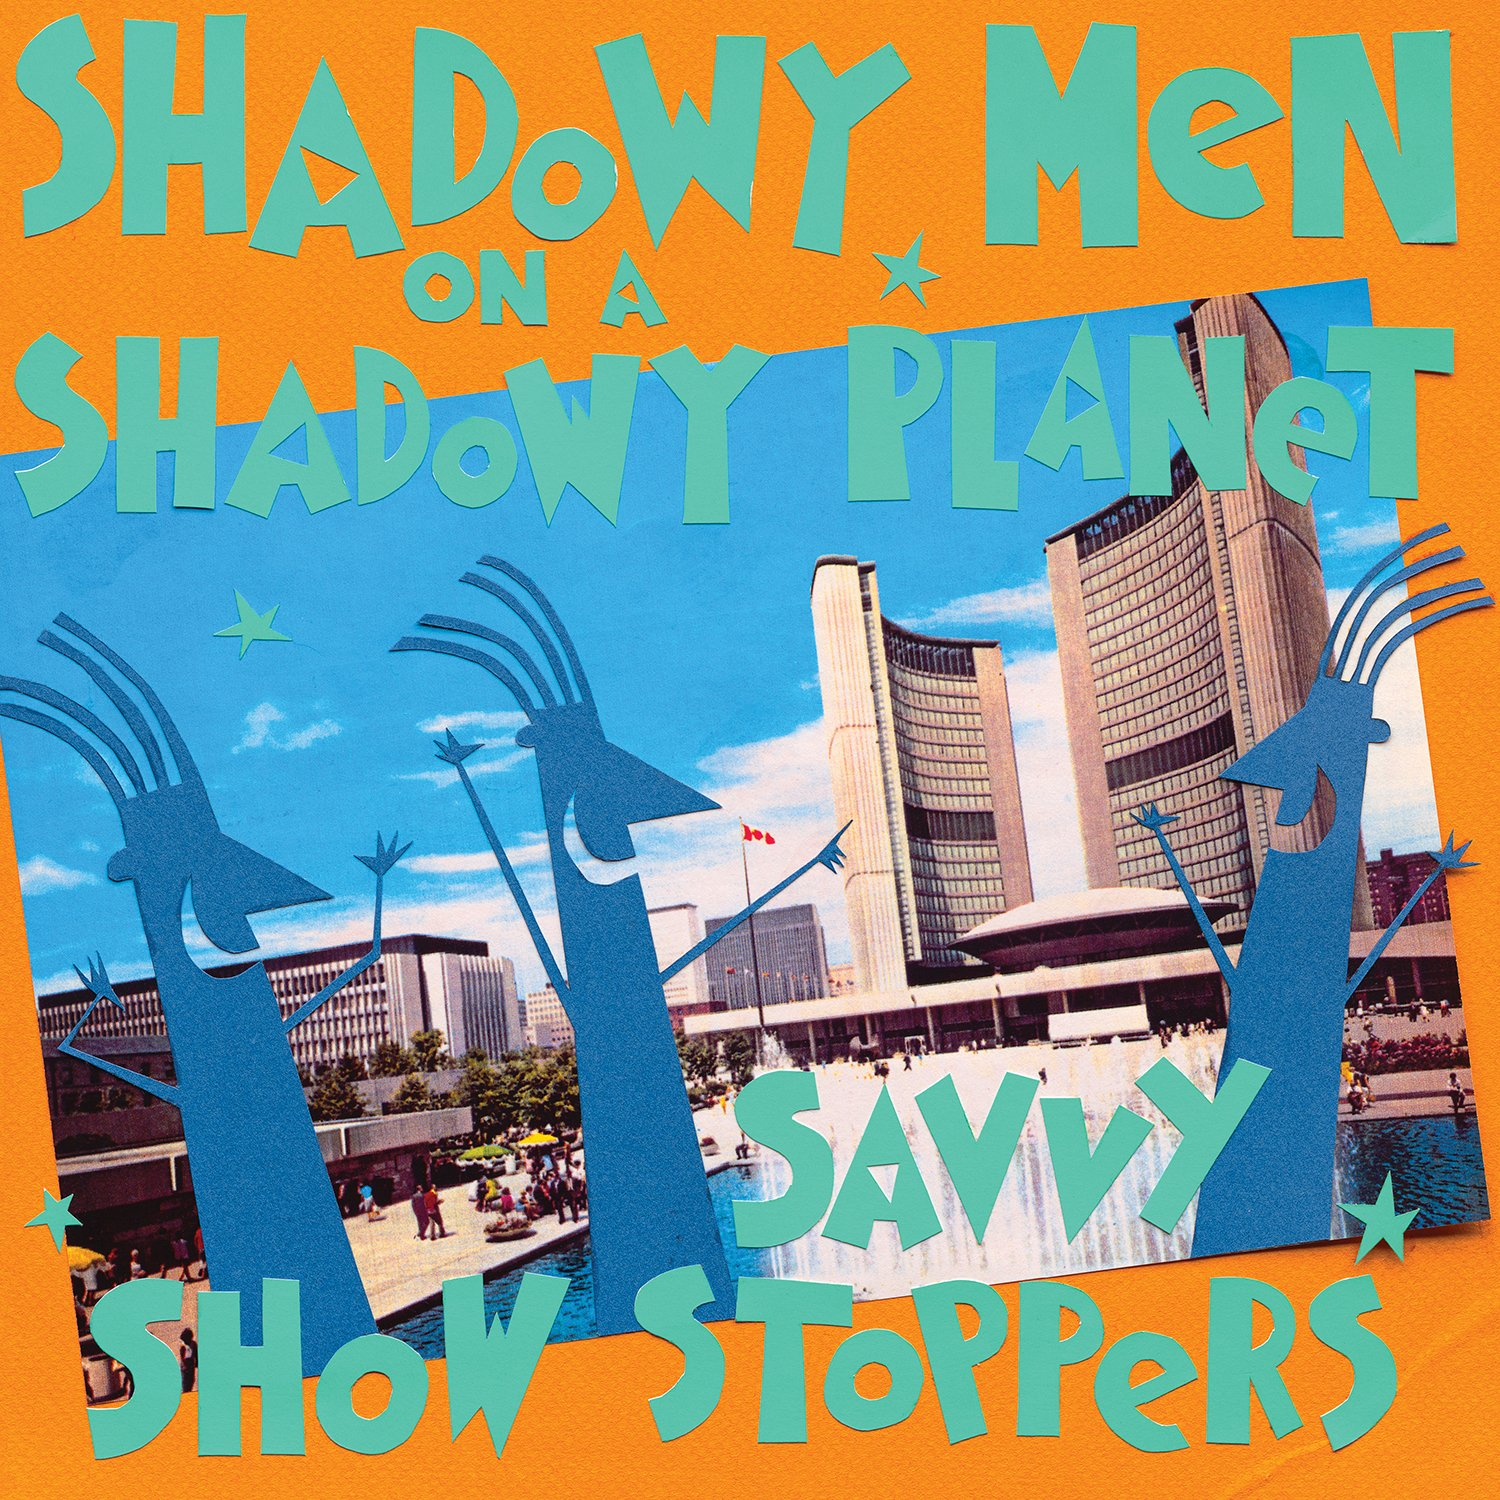 Vinilo : Shadowy Men on a Shadowy Planet - Savvy Show Stoppers (Gatefold LP Jacket, Digital Download Card)